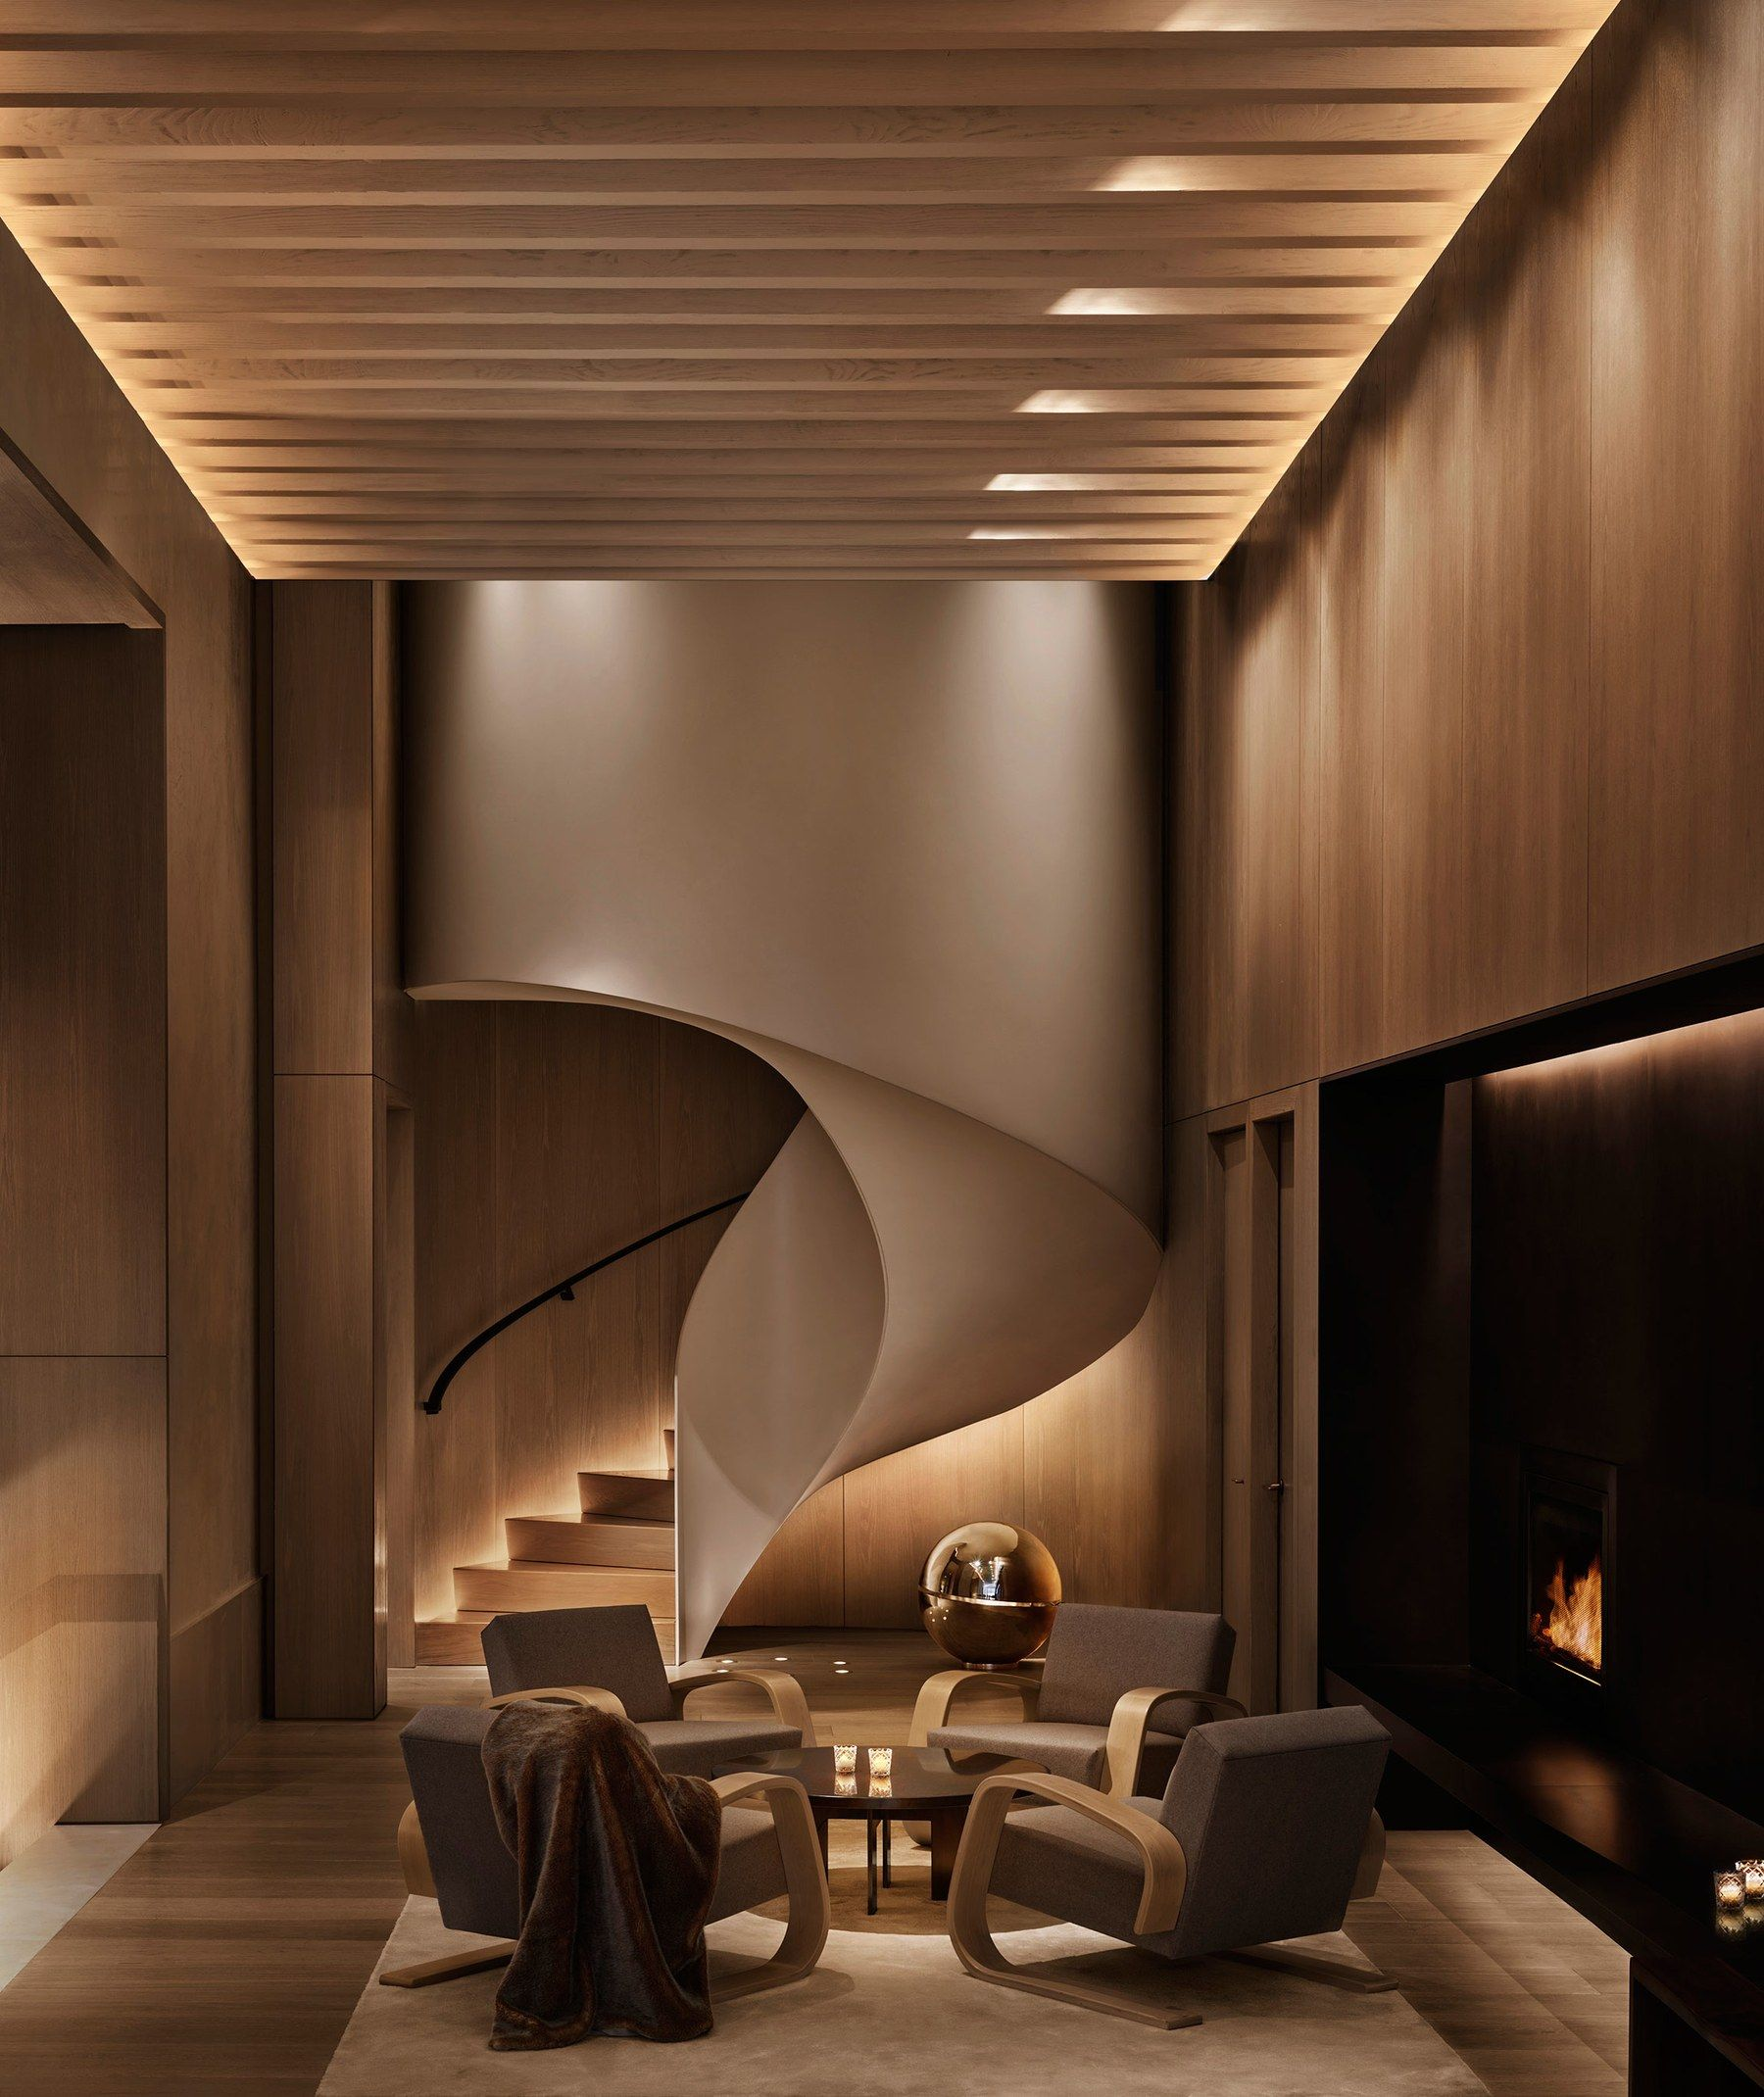 The lobby of the New York Edition hotel features helical steel stair ...